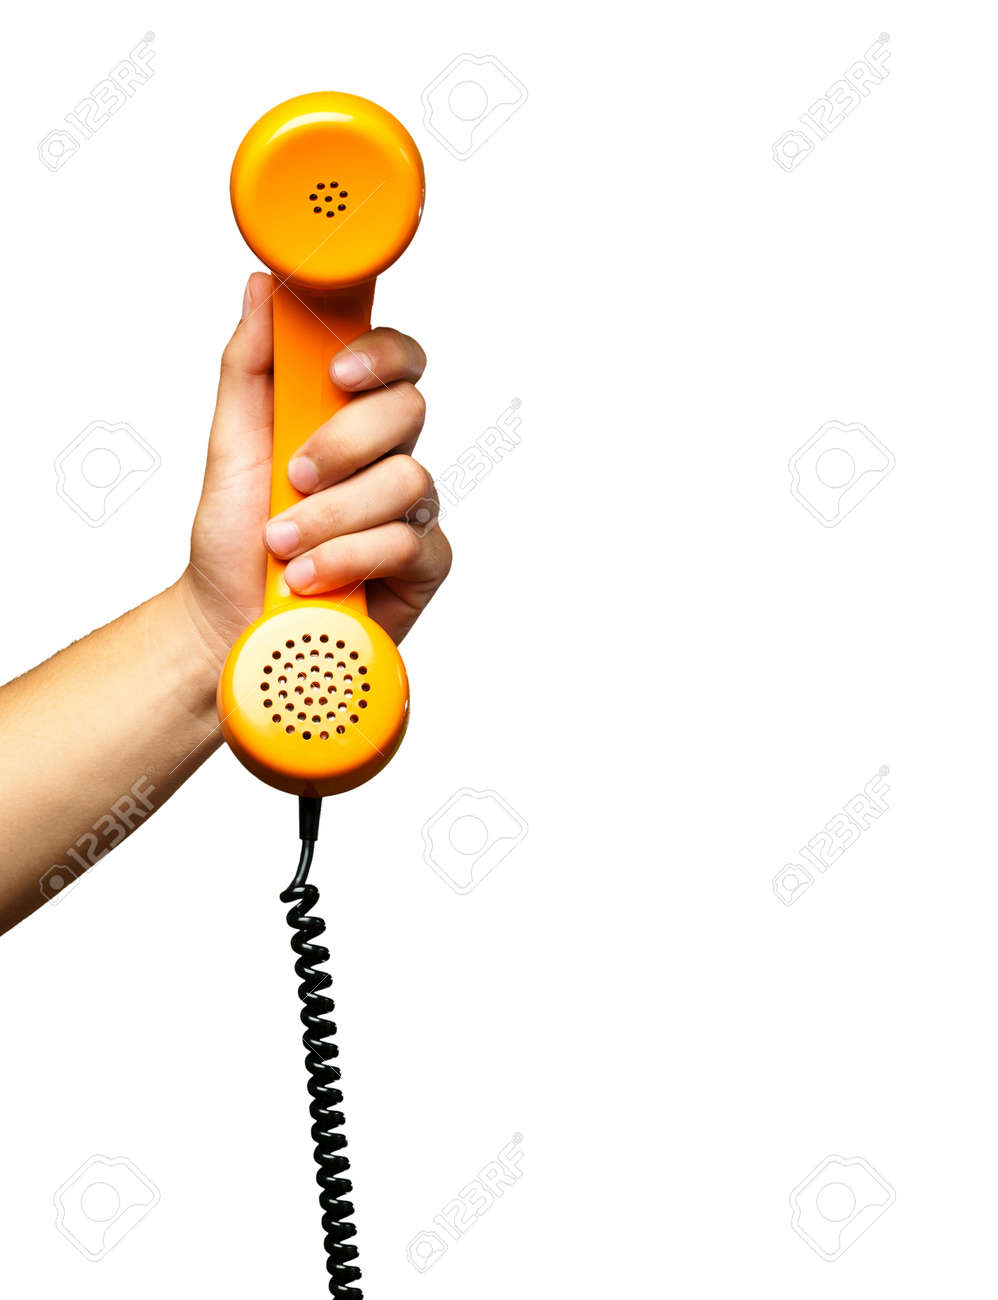 Close Up Of Hand Holding Telephone against a white background - 16686854